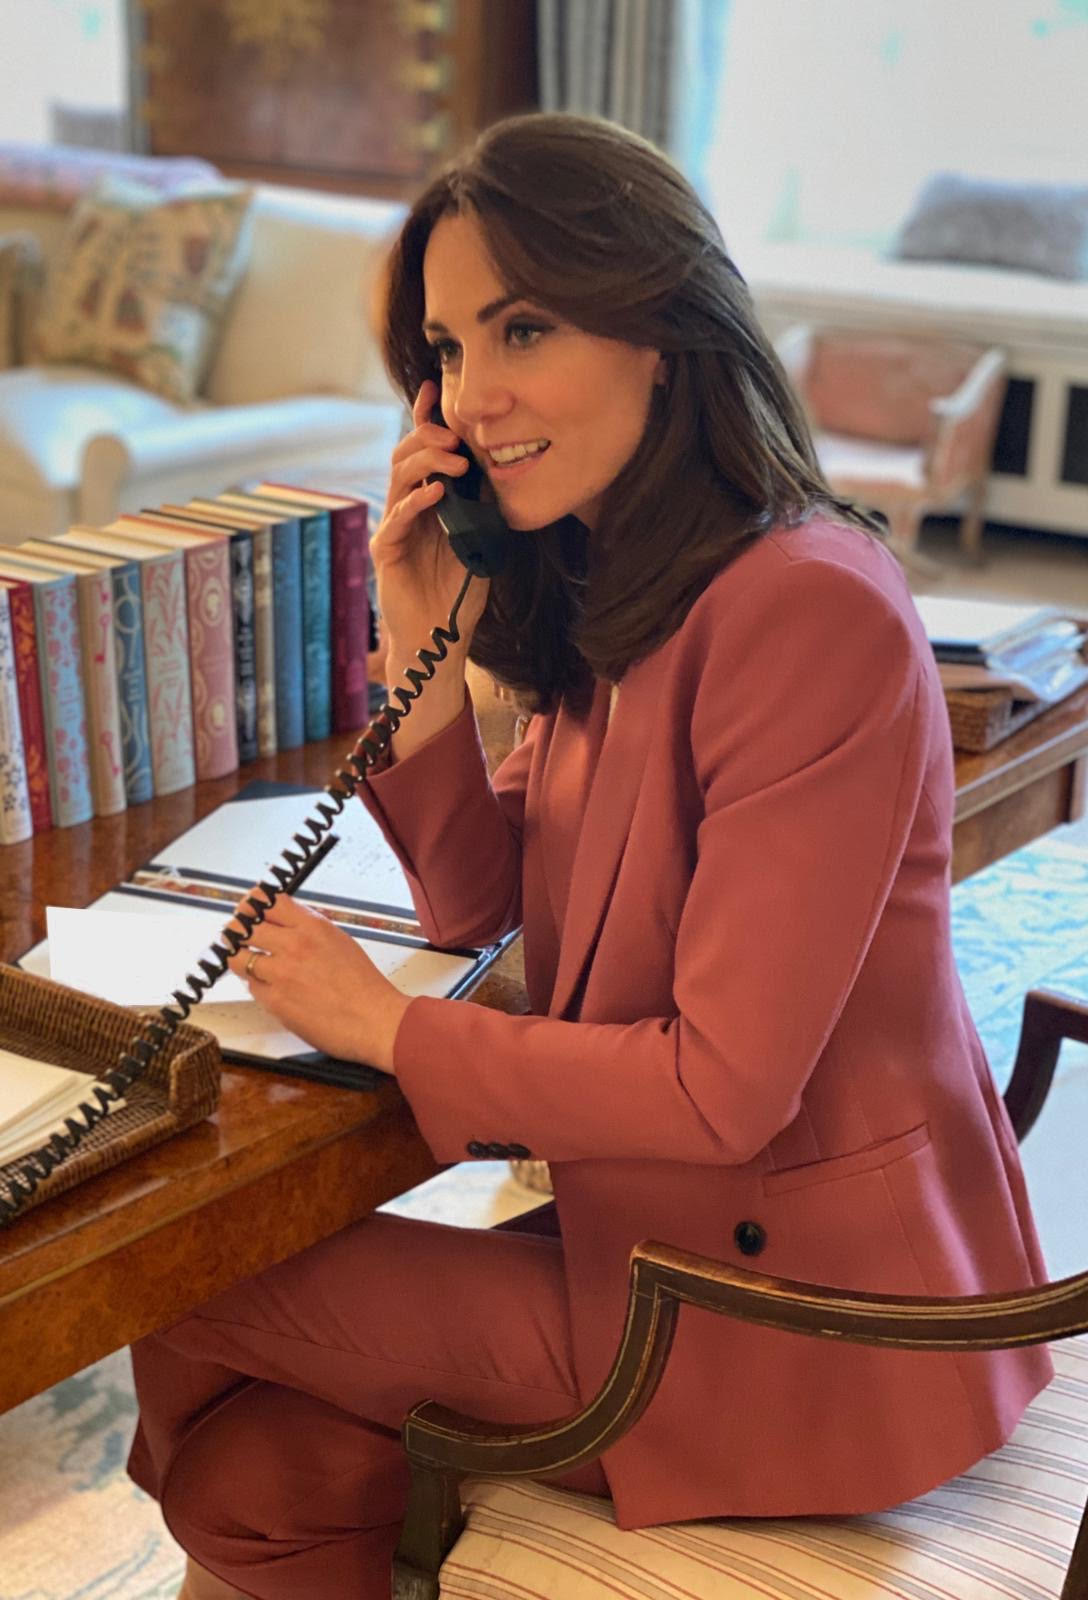 https://pbs.twimg.com/media/EUPCTU5WkAAmfg4?format=jpg& data-cke-saved-name=large name=large